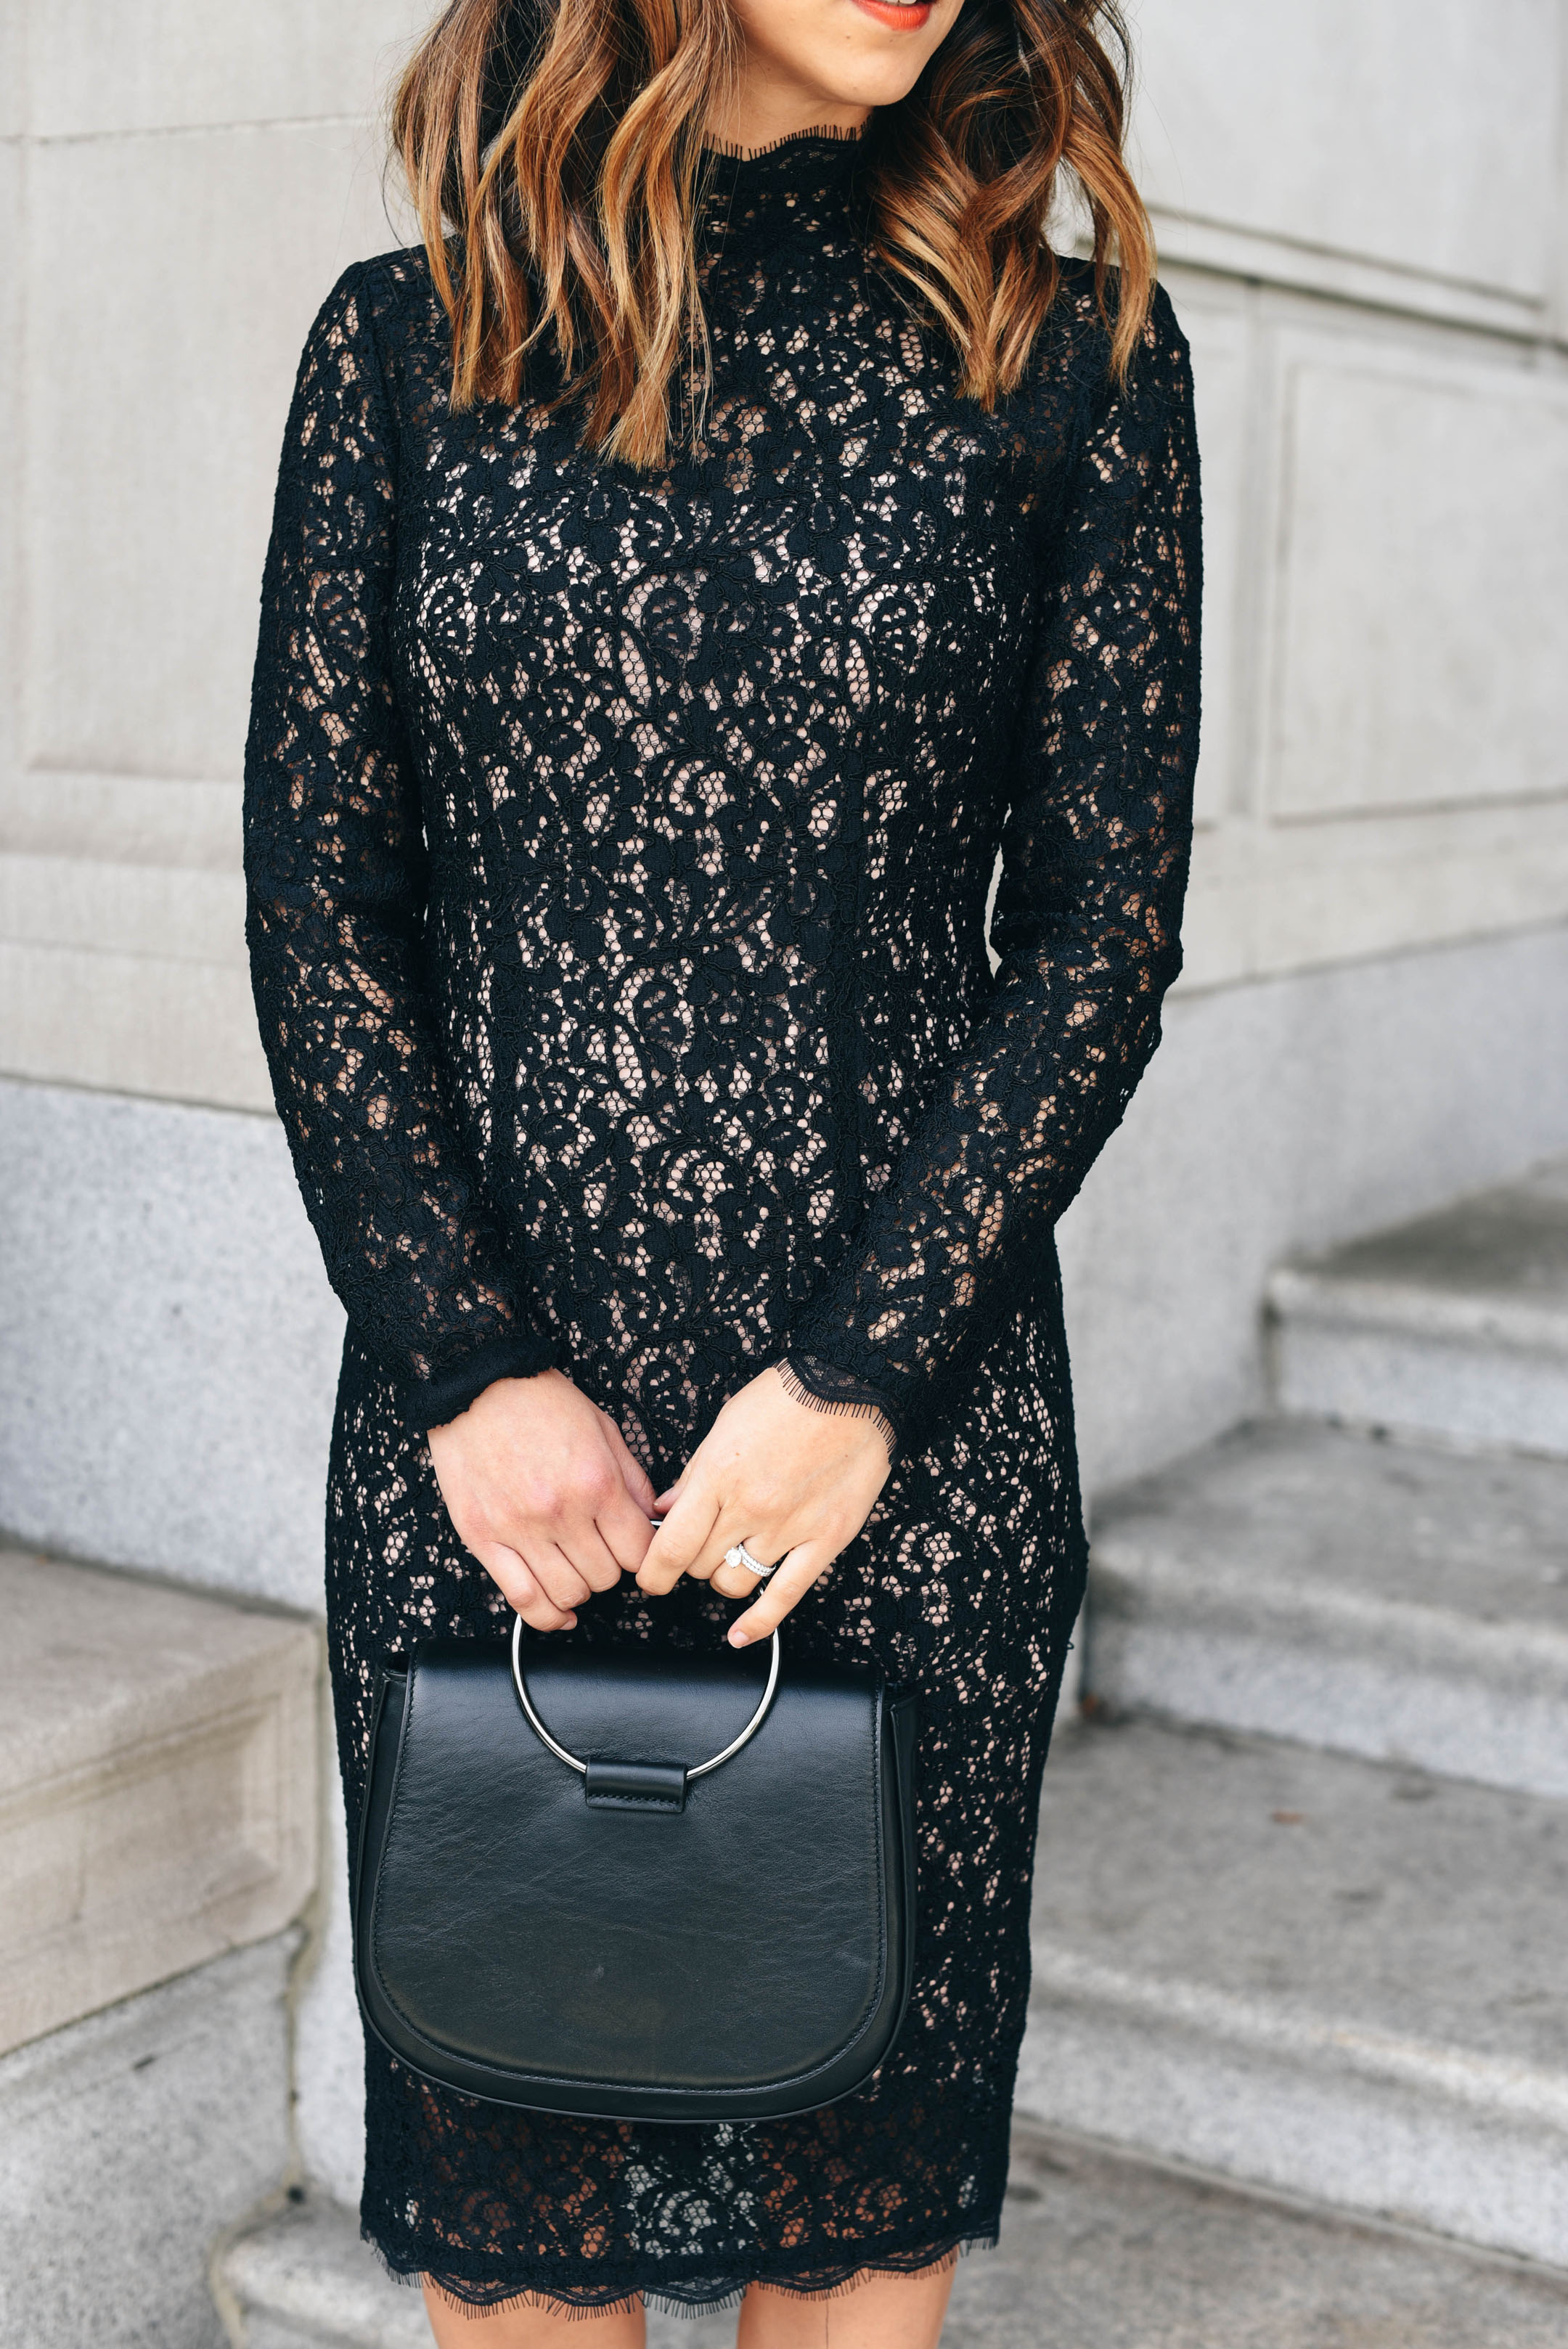 crystalin-marie-wearing-adrianna-papell-sheath-lace-dress